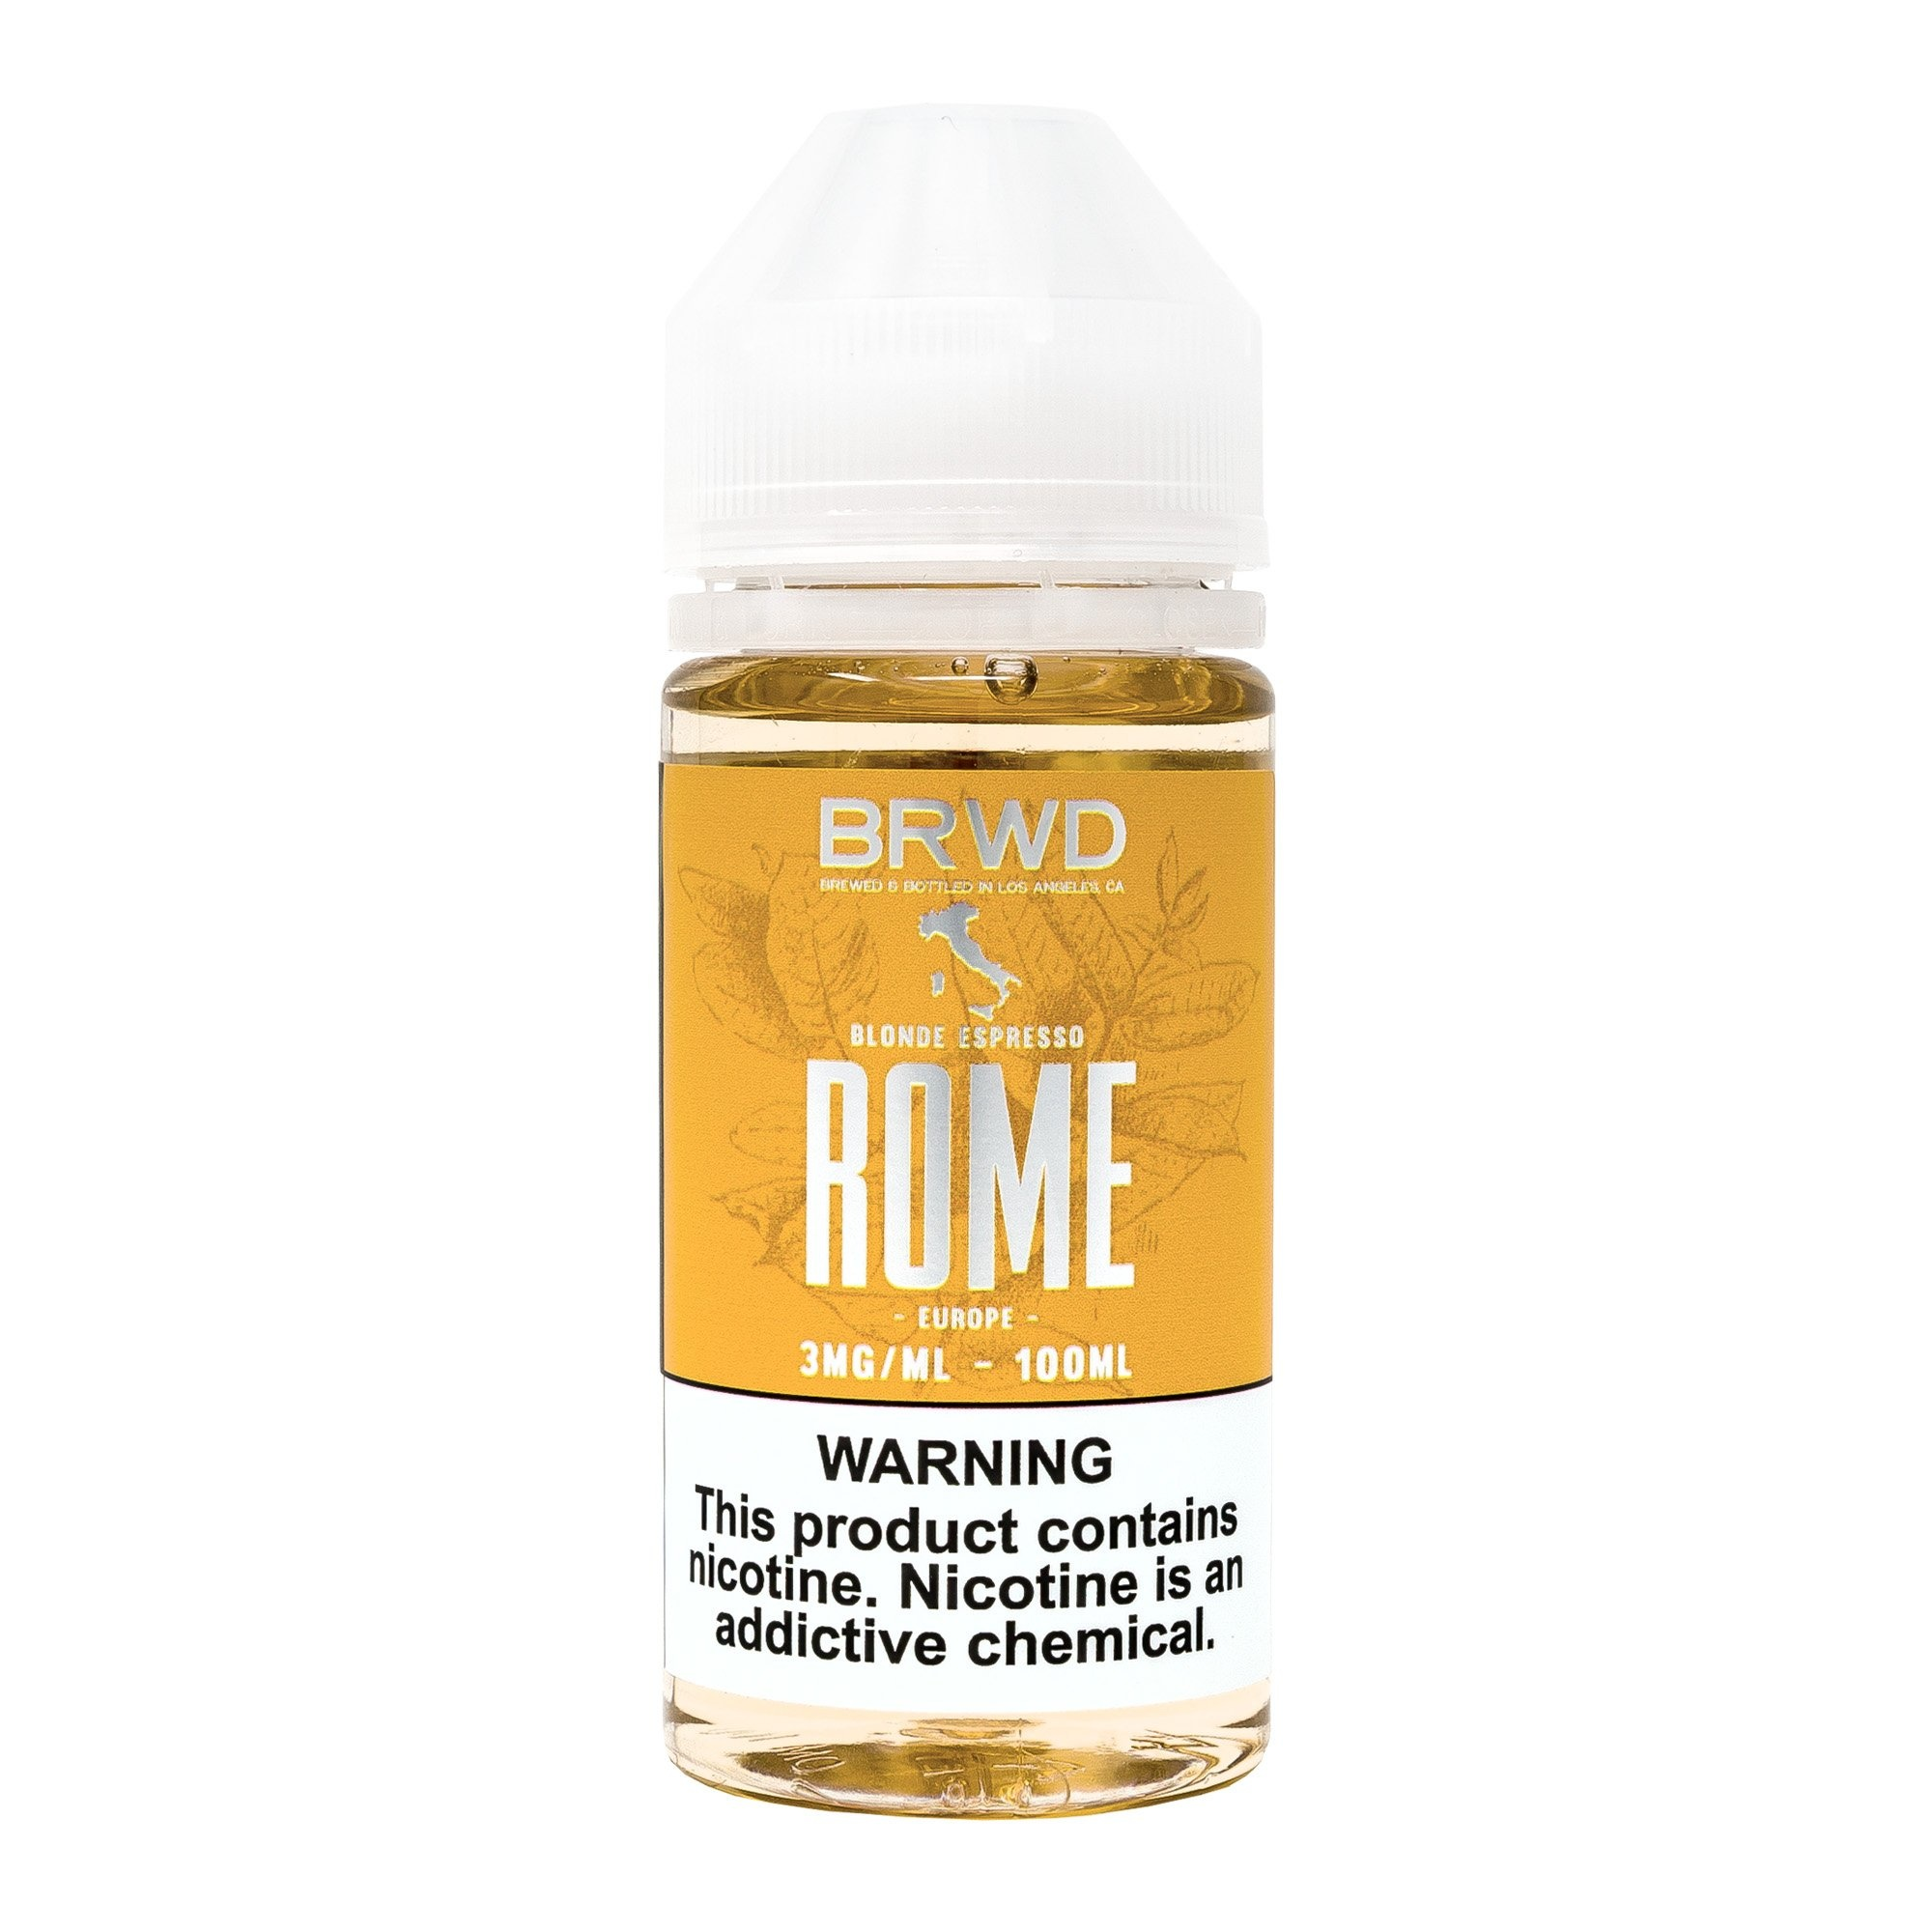 BRWD Rome 100ml (MSRP $24.99)